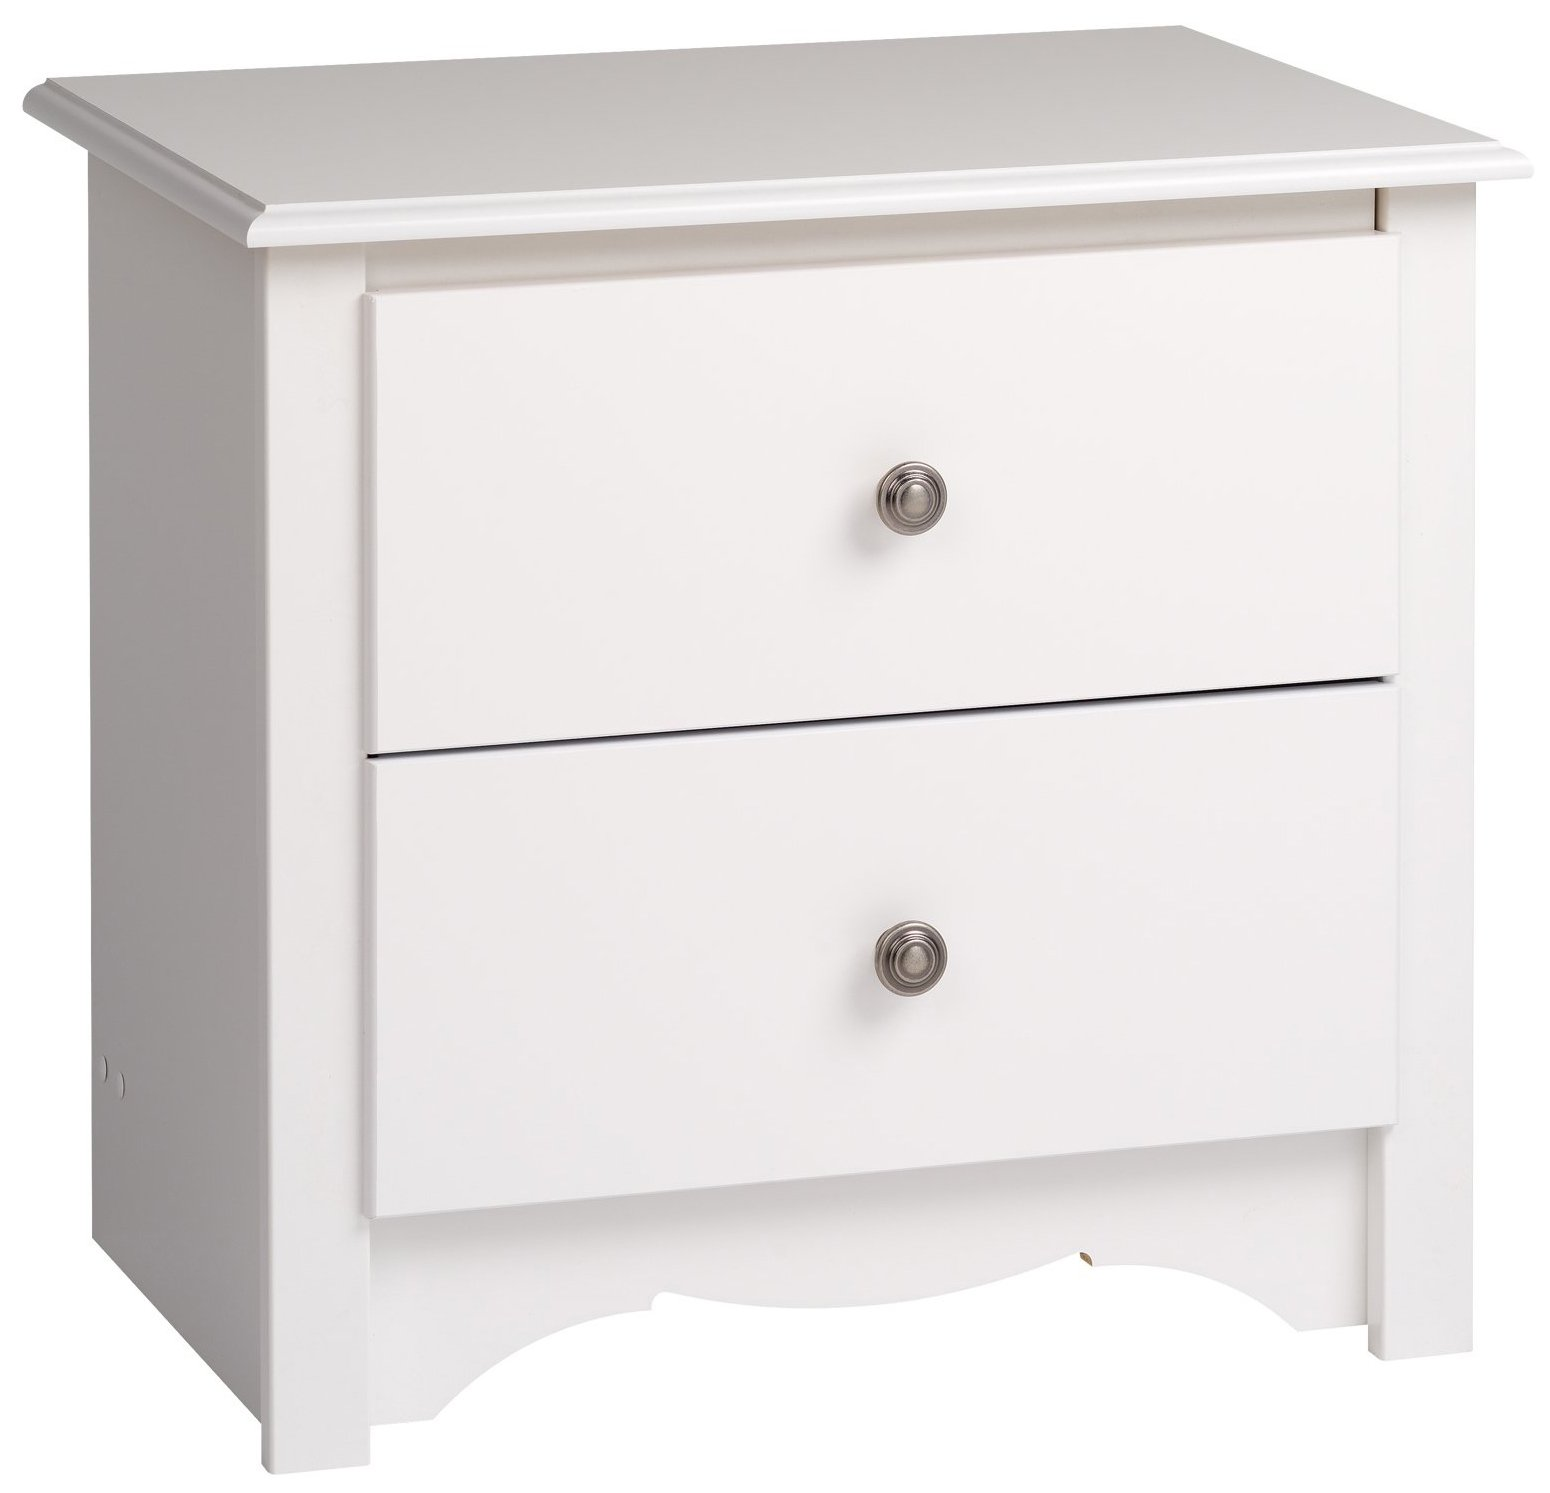 Prepac White Monterey 2 Drawer Nightstand by Prepac